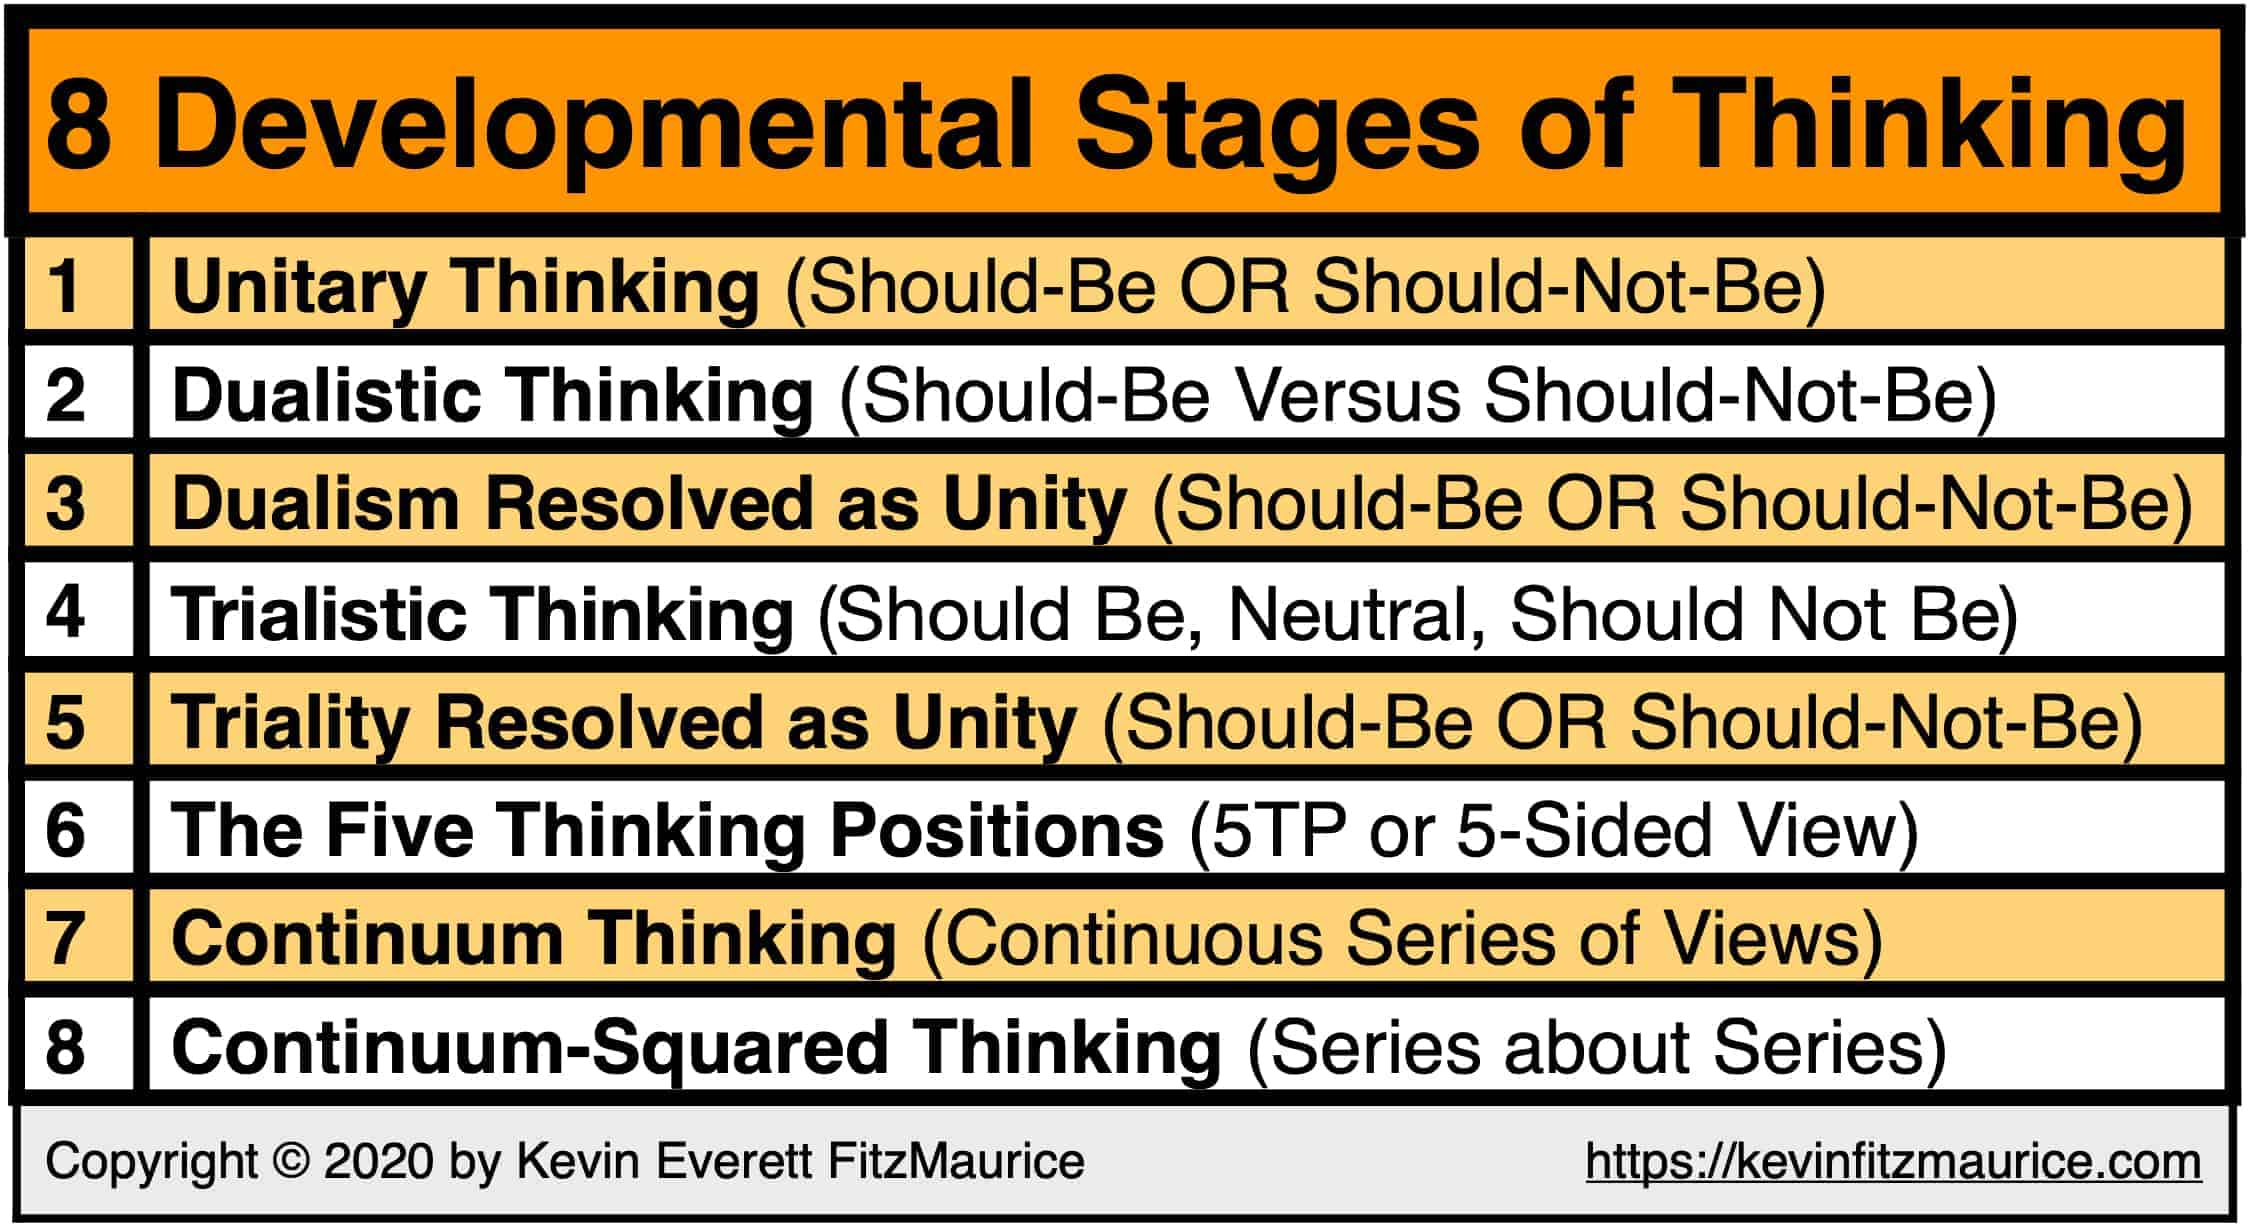 The 8 Stages of the Development of Thinking